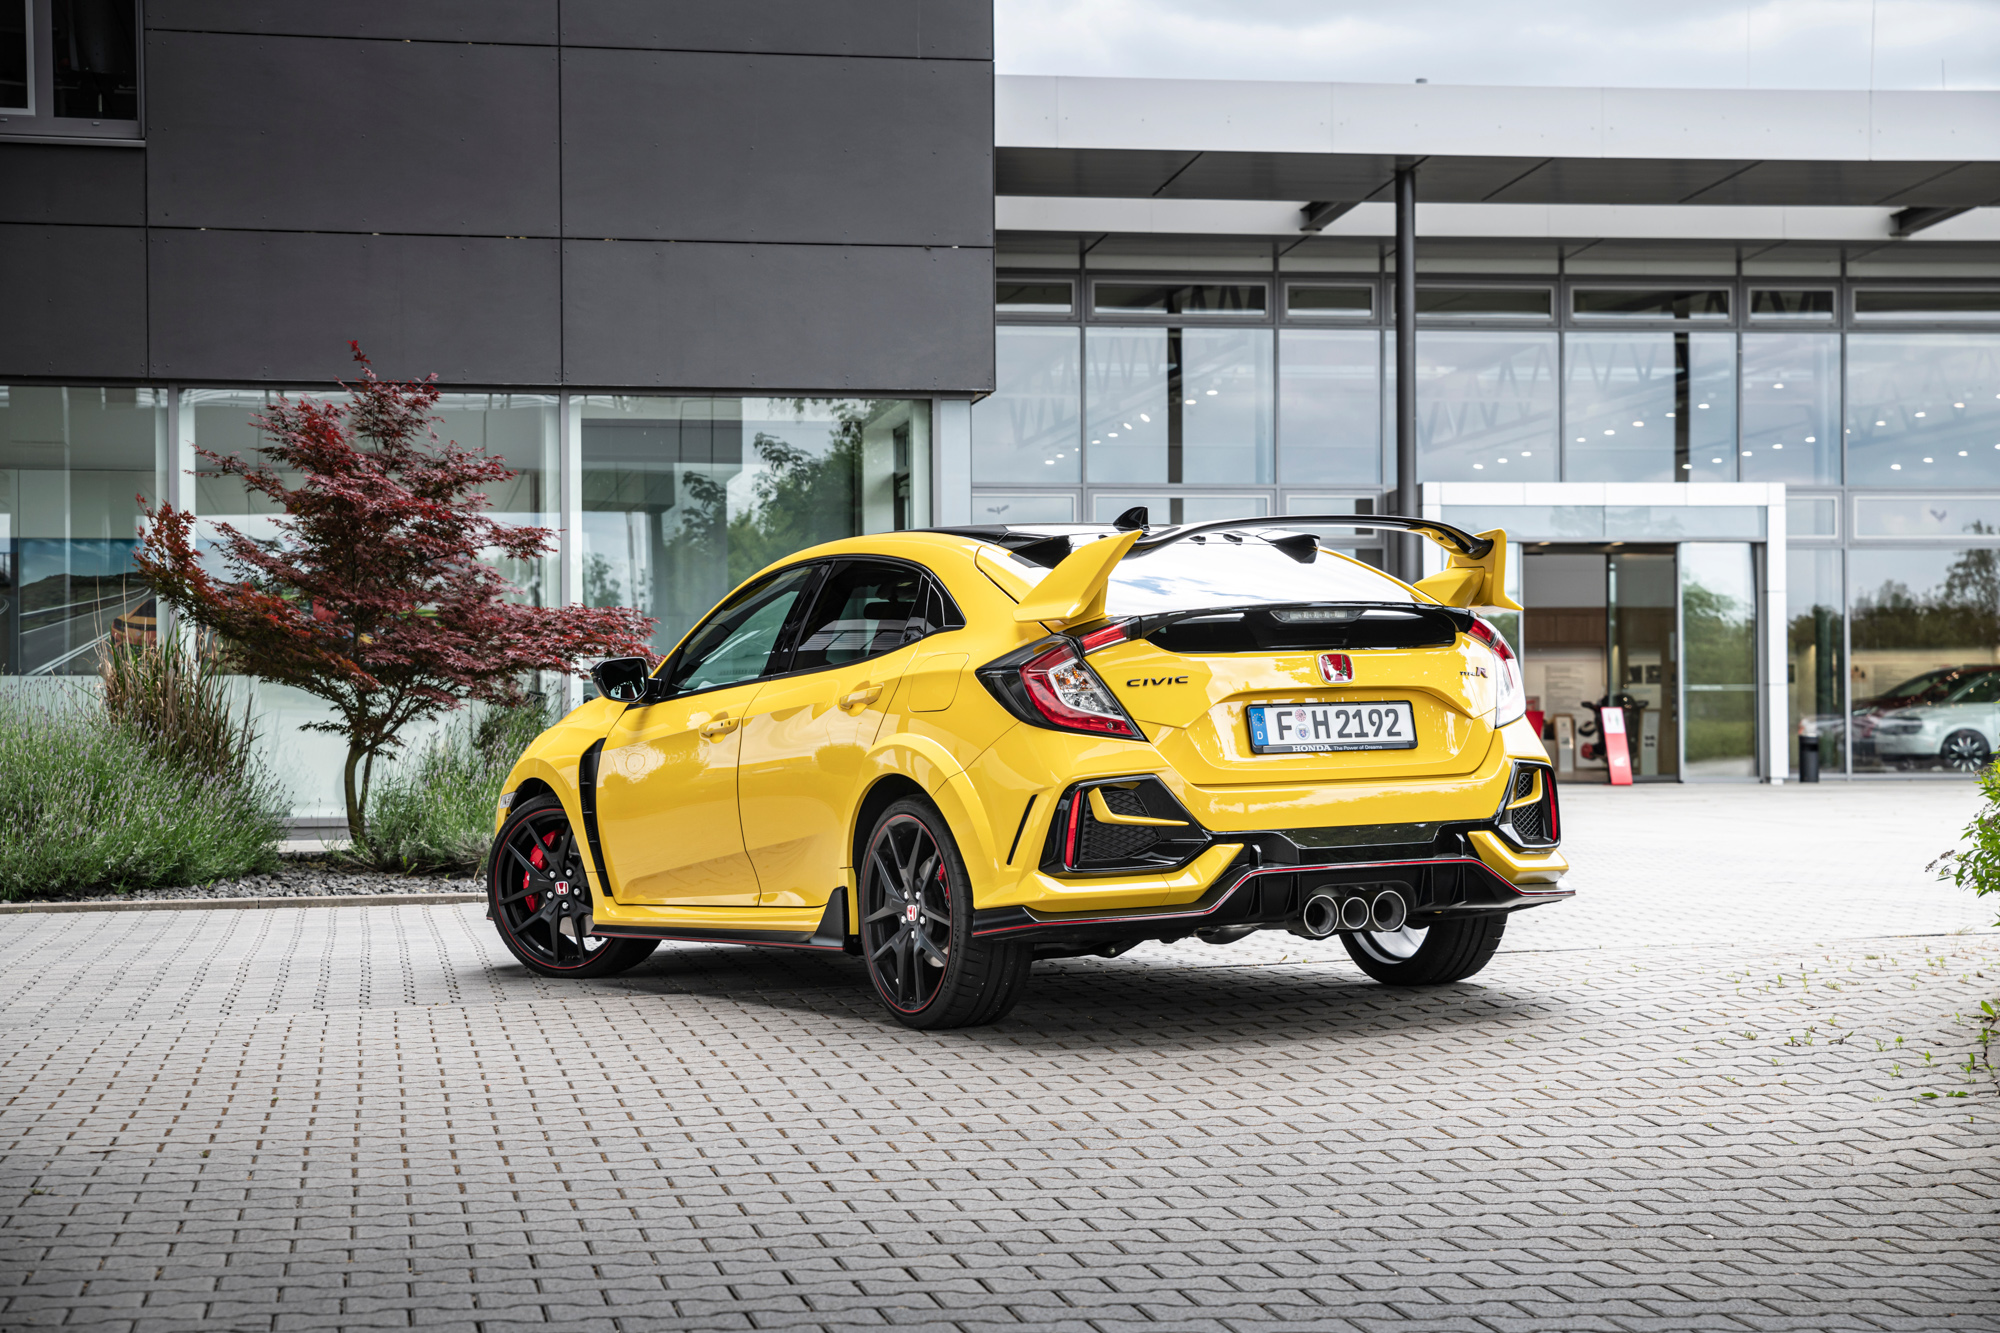 hondacivictyper2021limited-cafeautovn-8